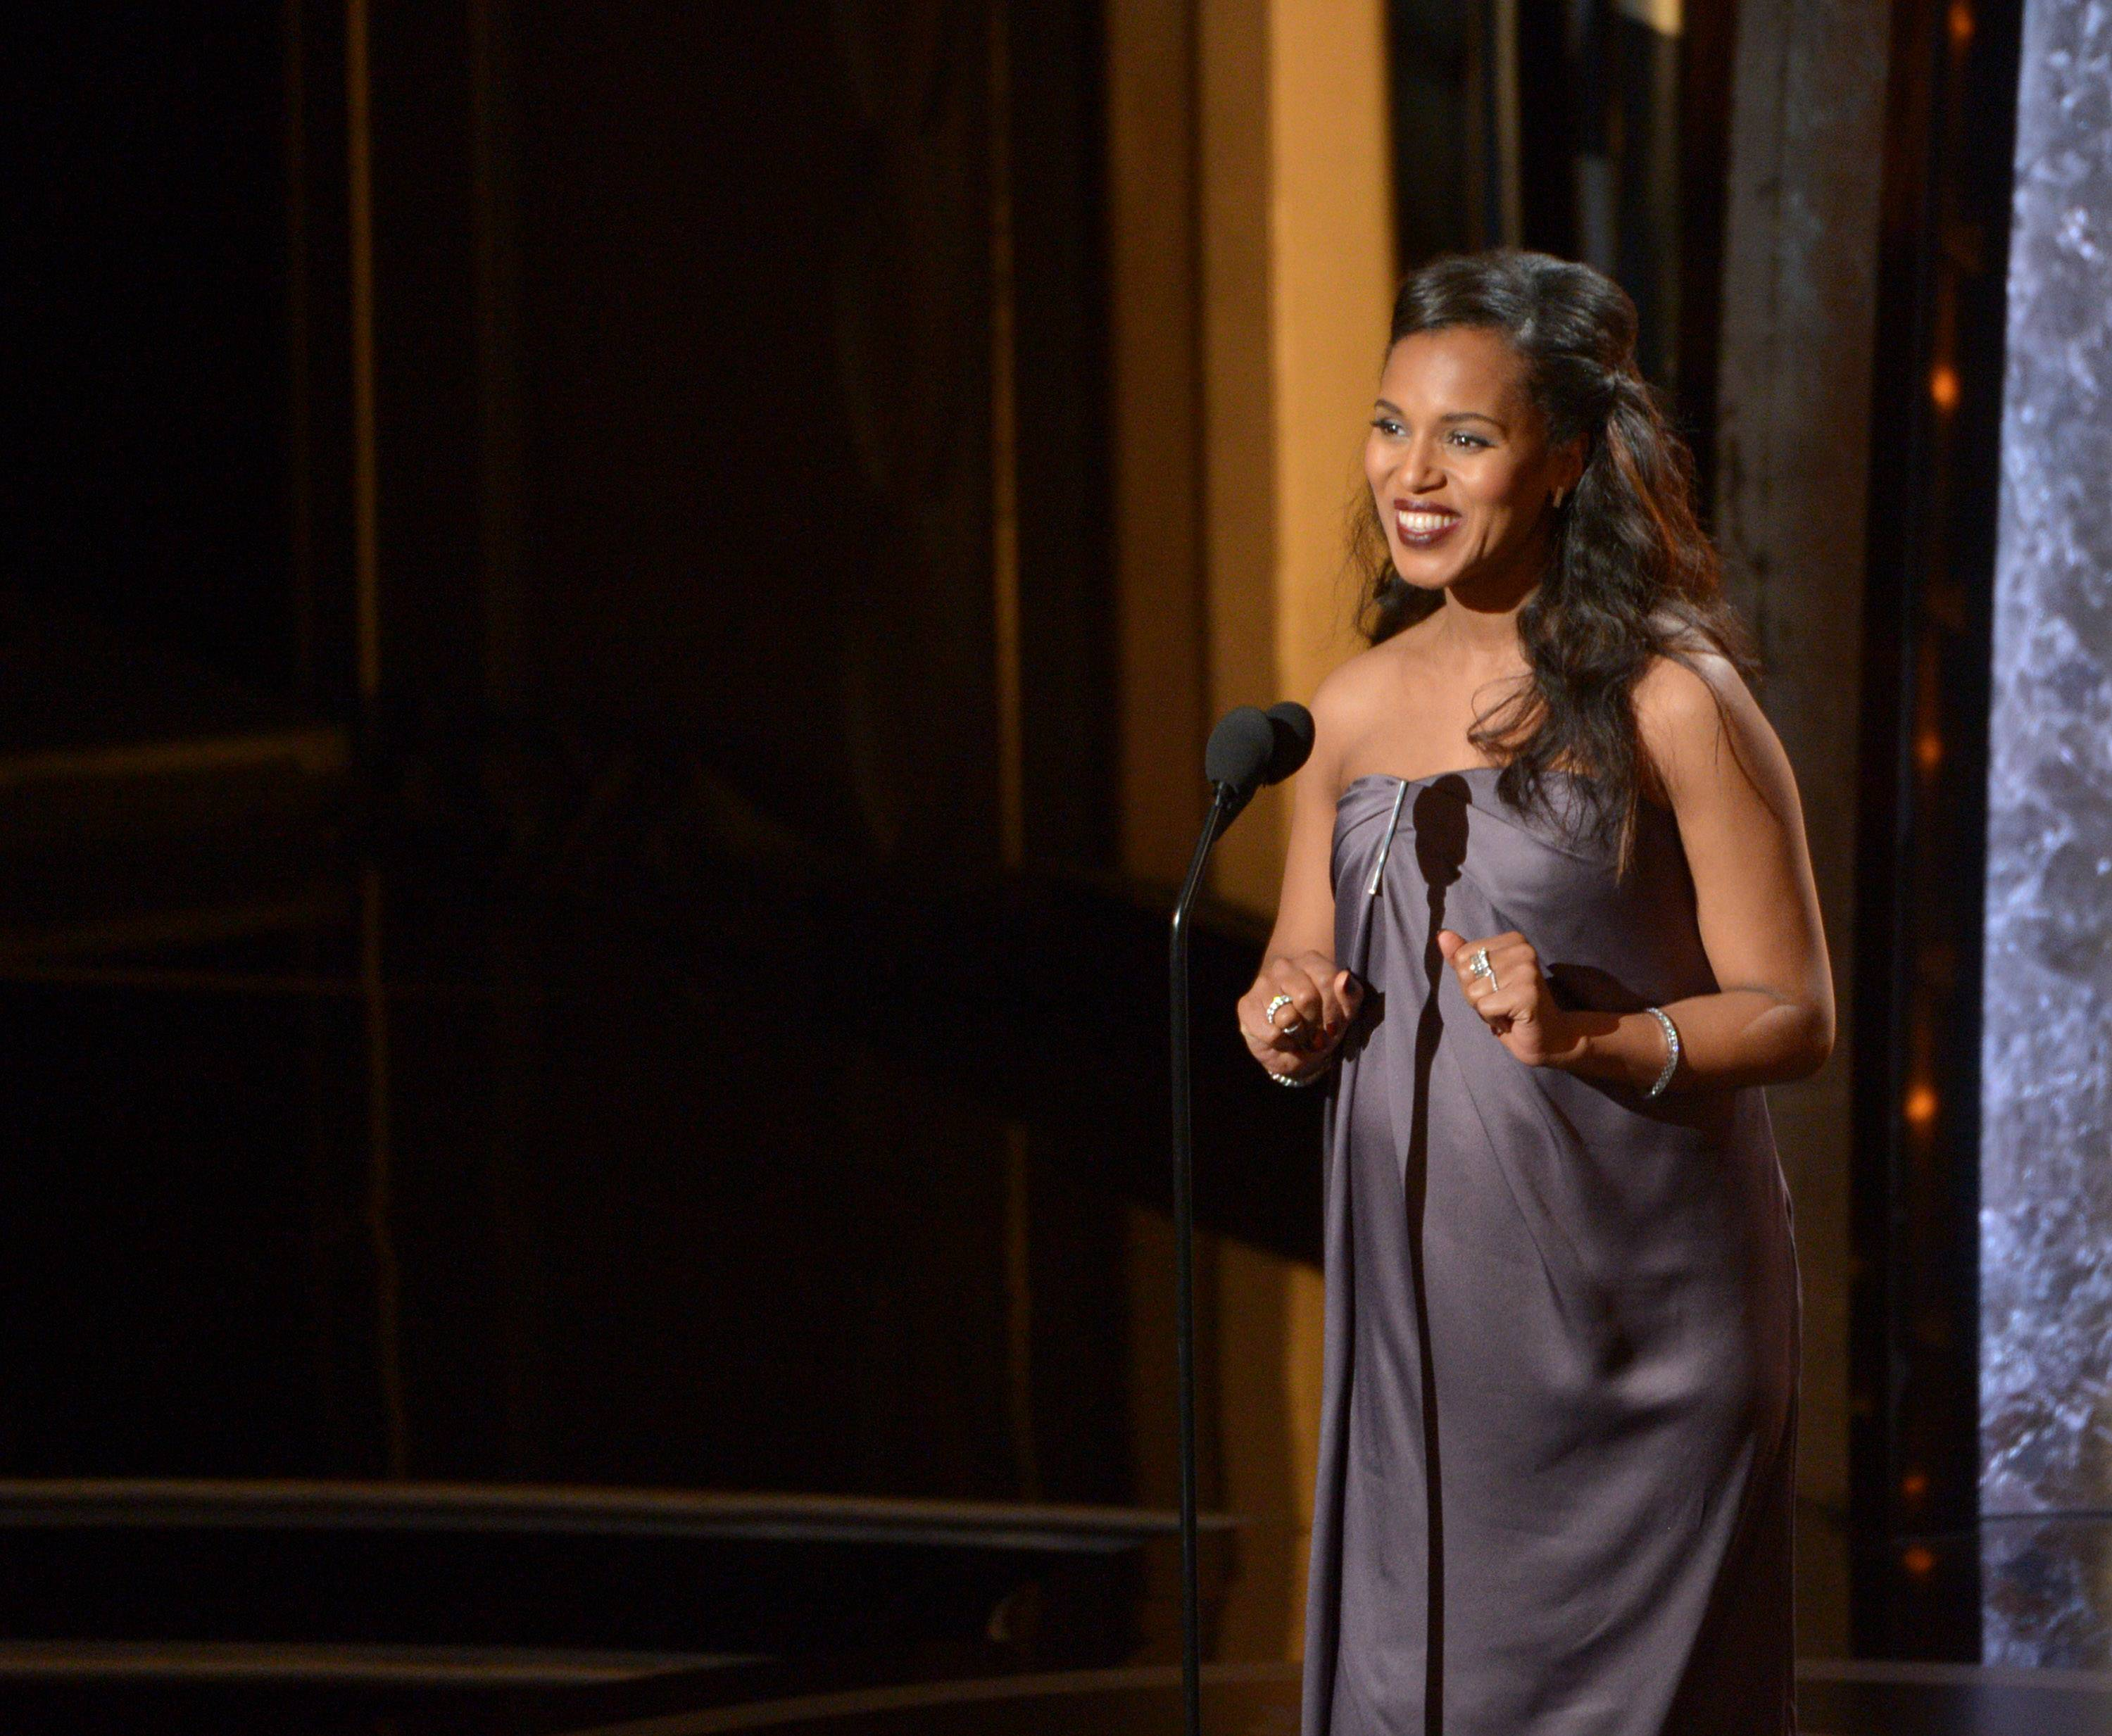 Kerry Washington speaks during the Oscars at the Dolby Theatre on Sunday.